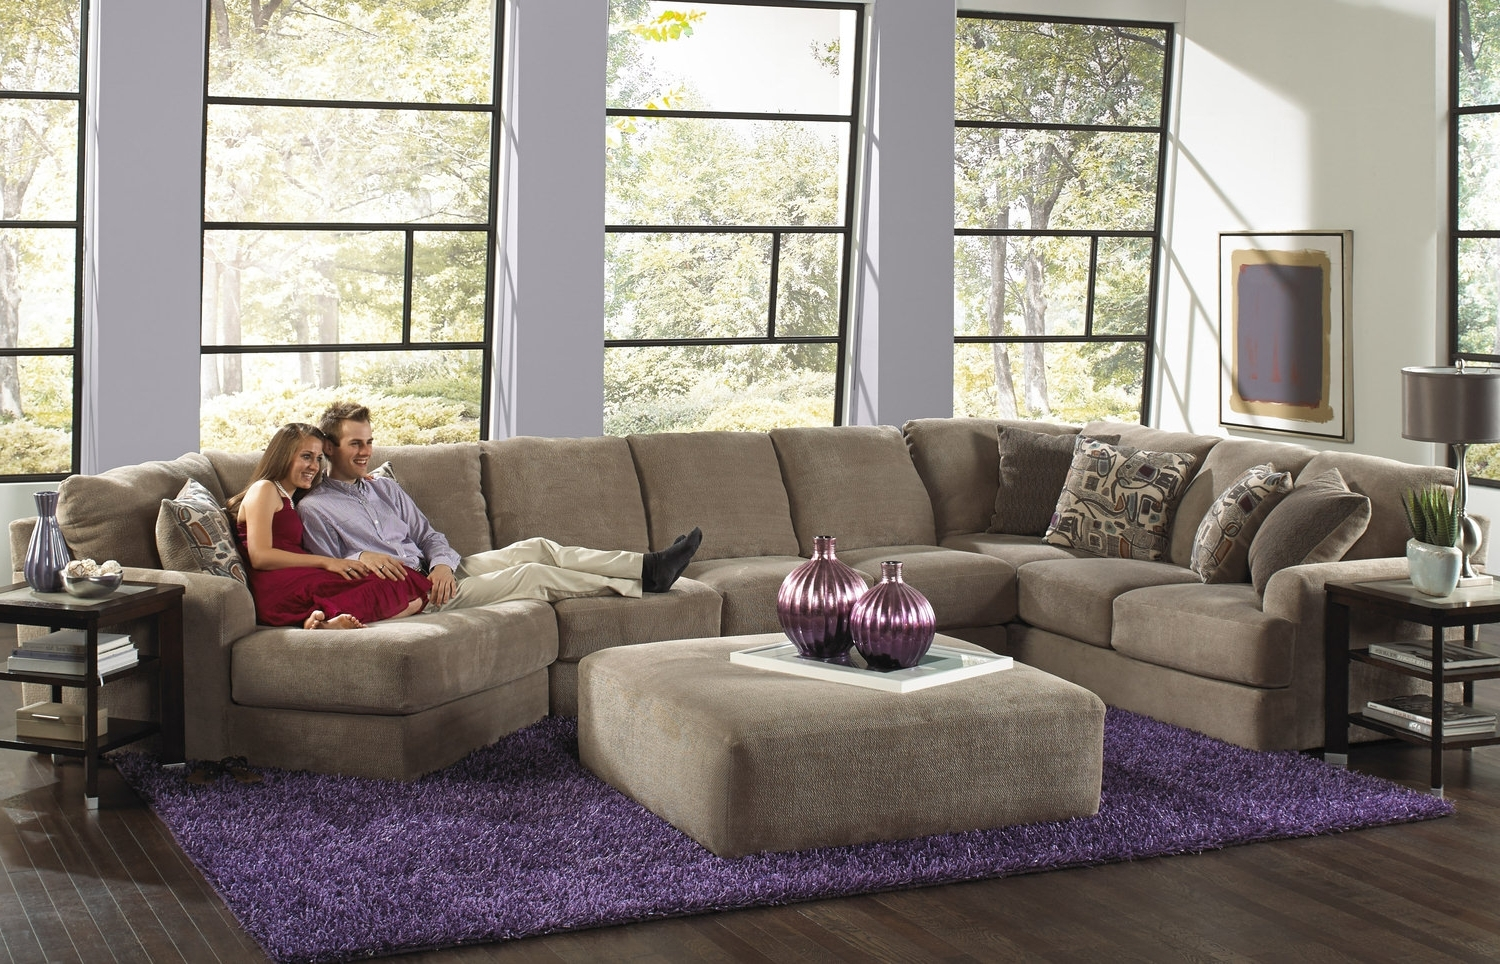 Most Recent 110X110 Sectional Sofas Within Furniture : Sectional Sofa 110 X 110 Corner Couch Ideas Sectional (View 12 of 15)